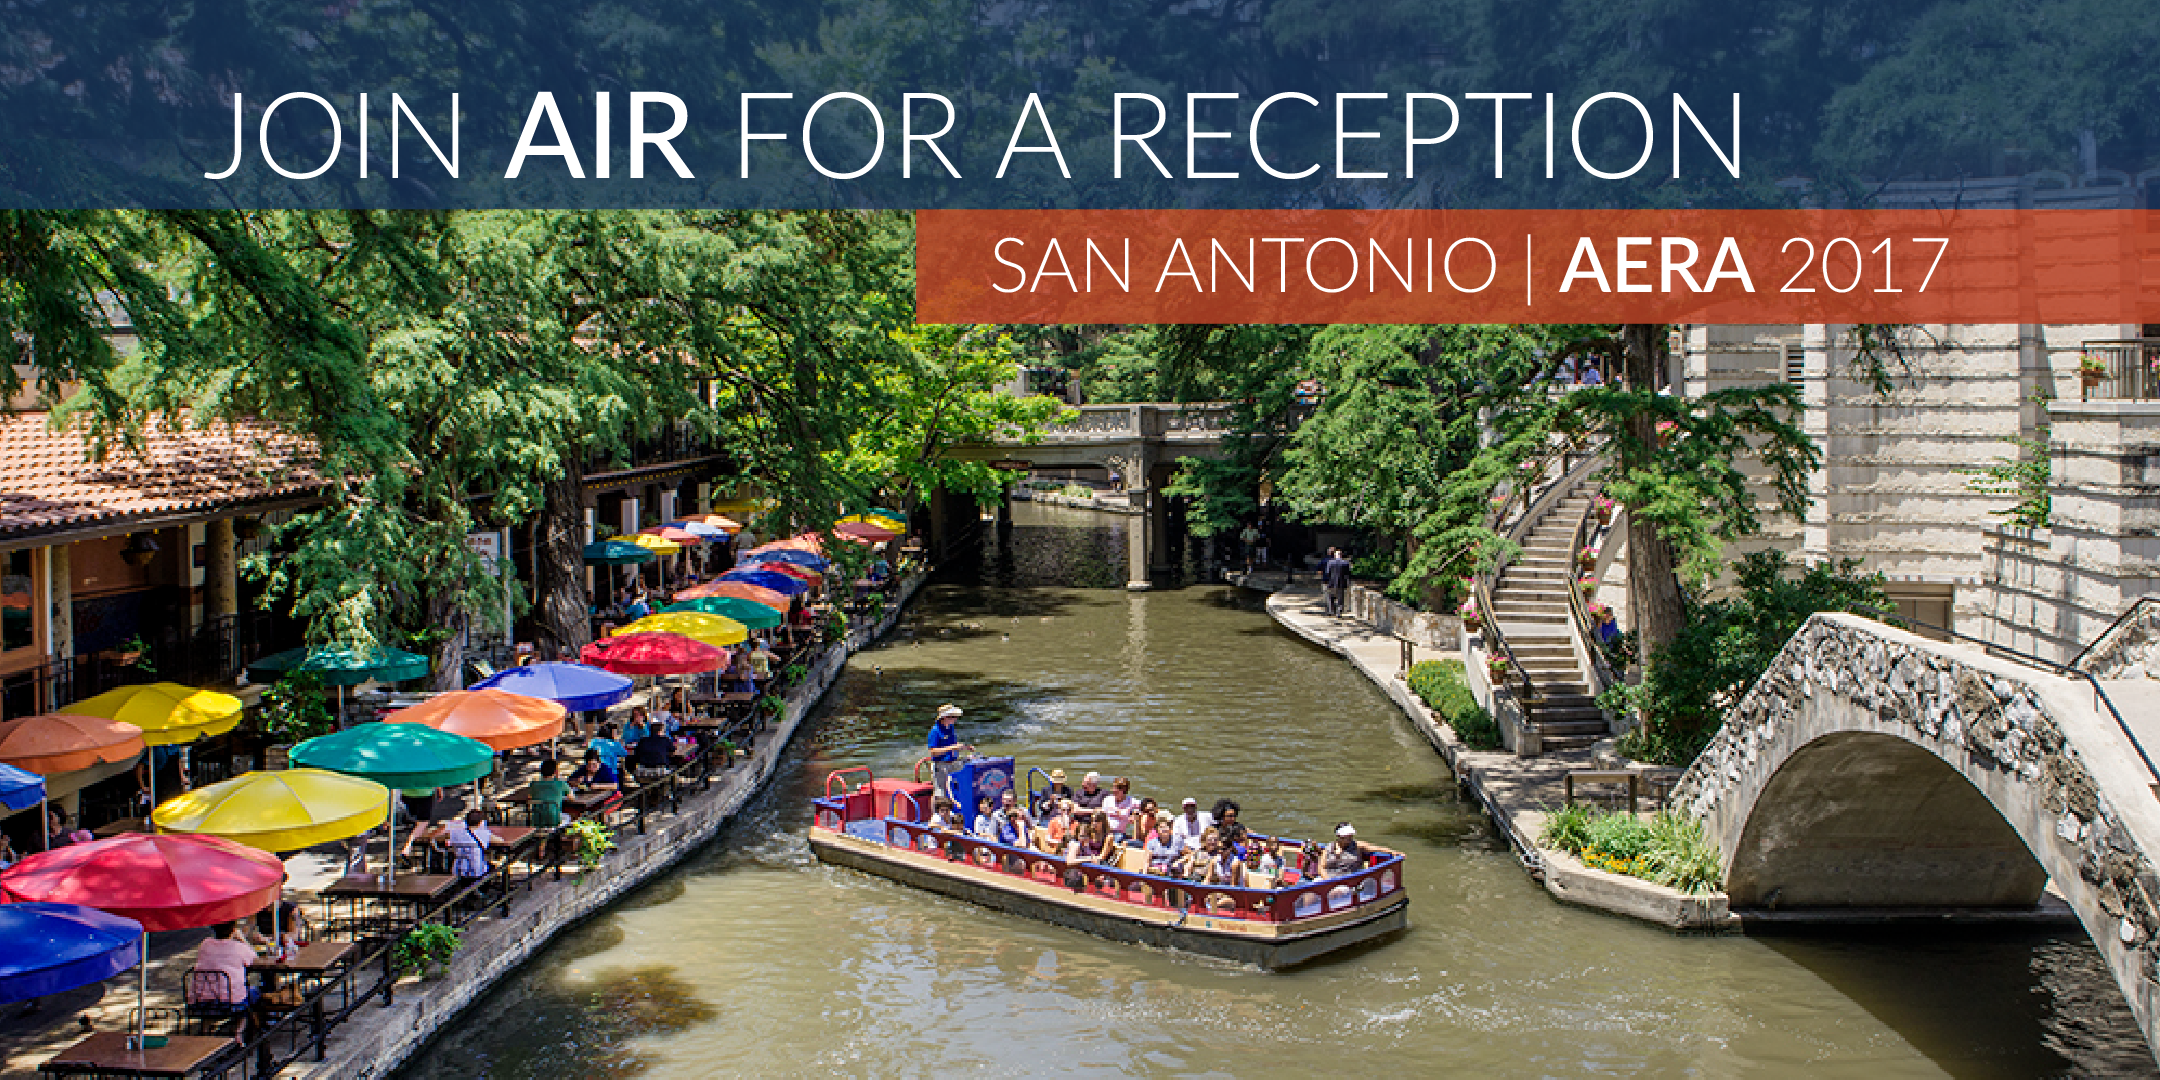 Join AIR for a reception during the annual AERA meeting